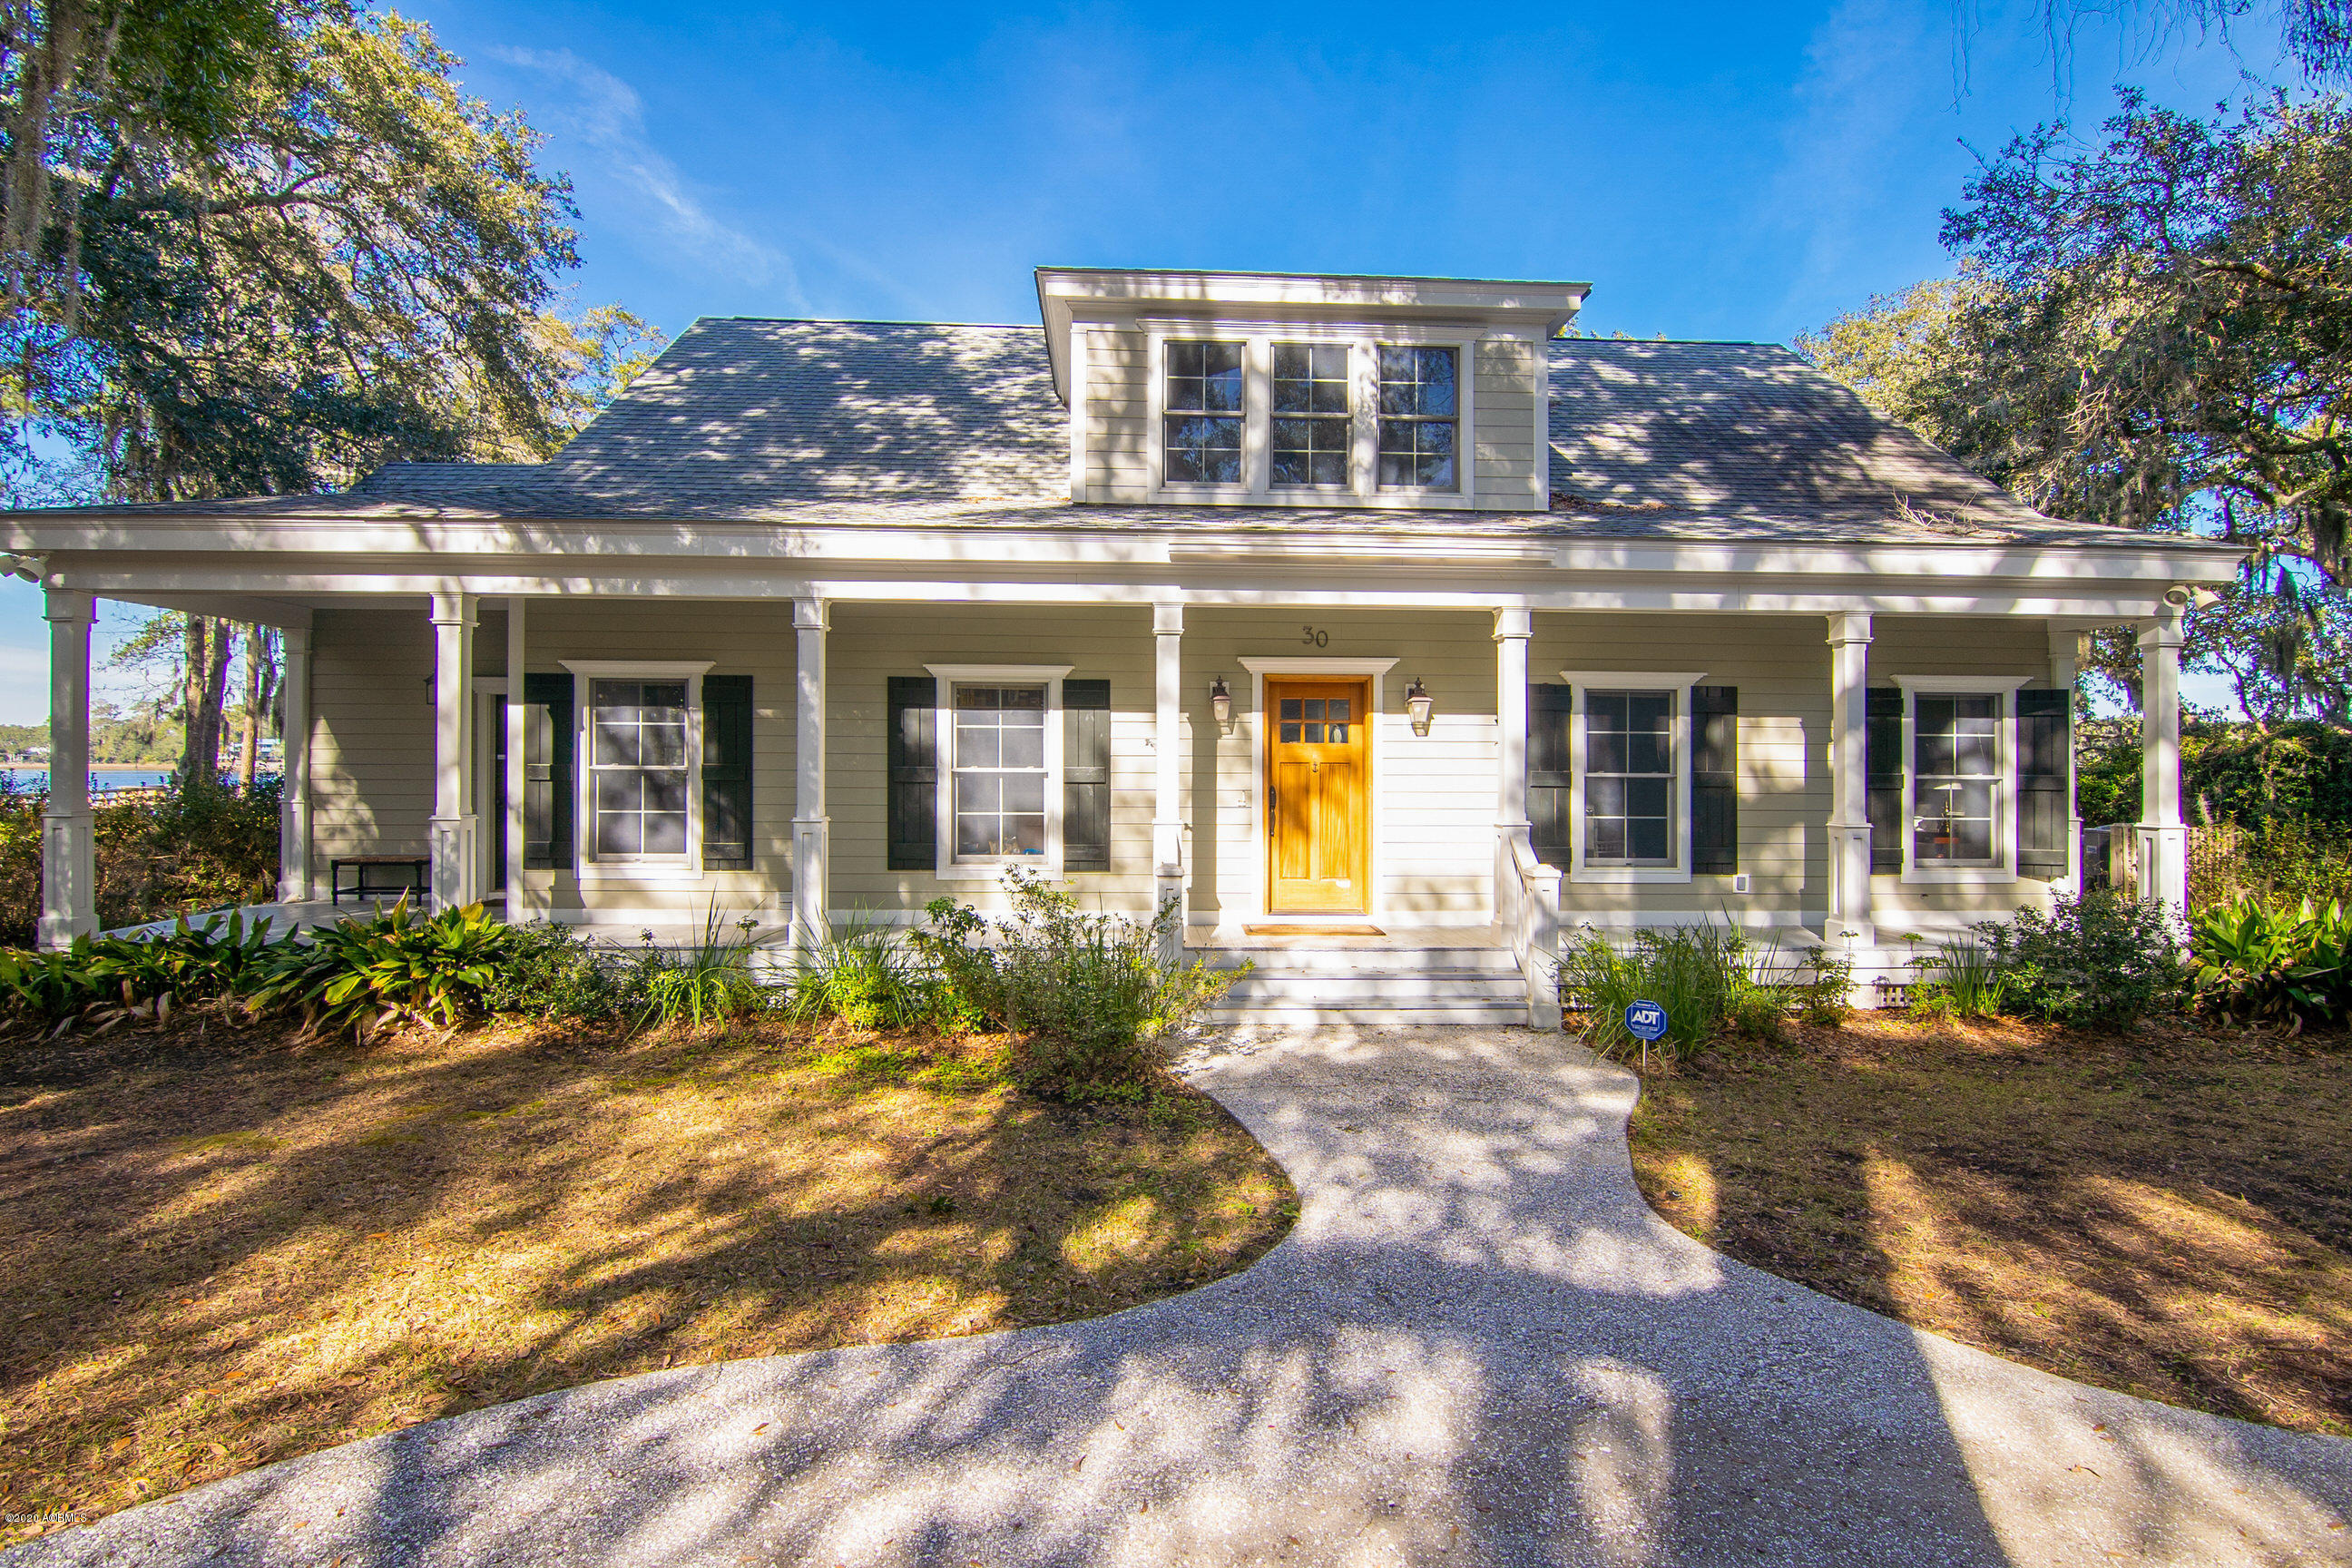 Photo of 30 W River Drive, Beaufort, SC 29907